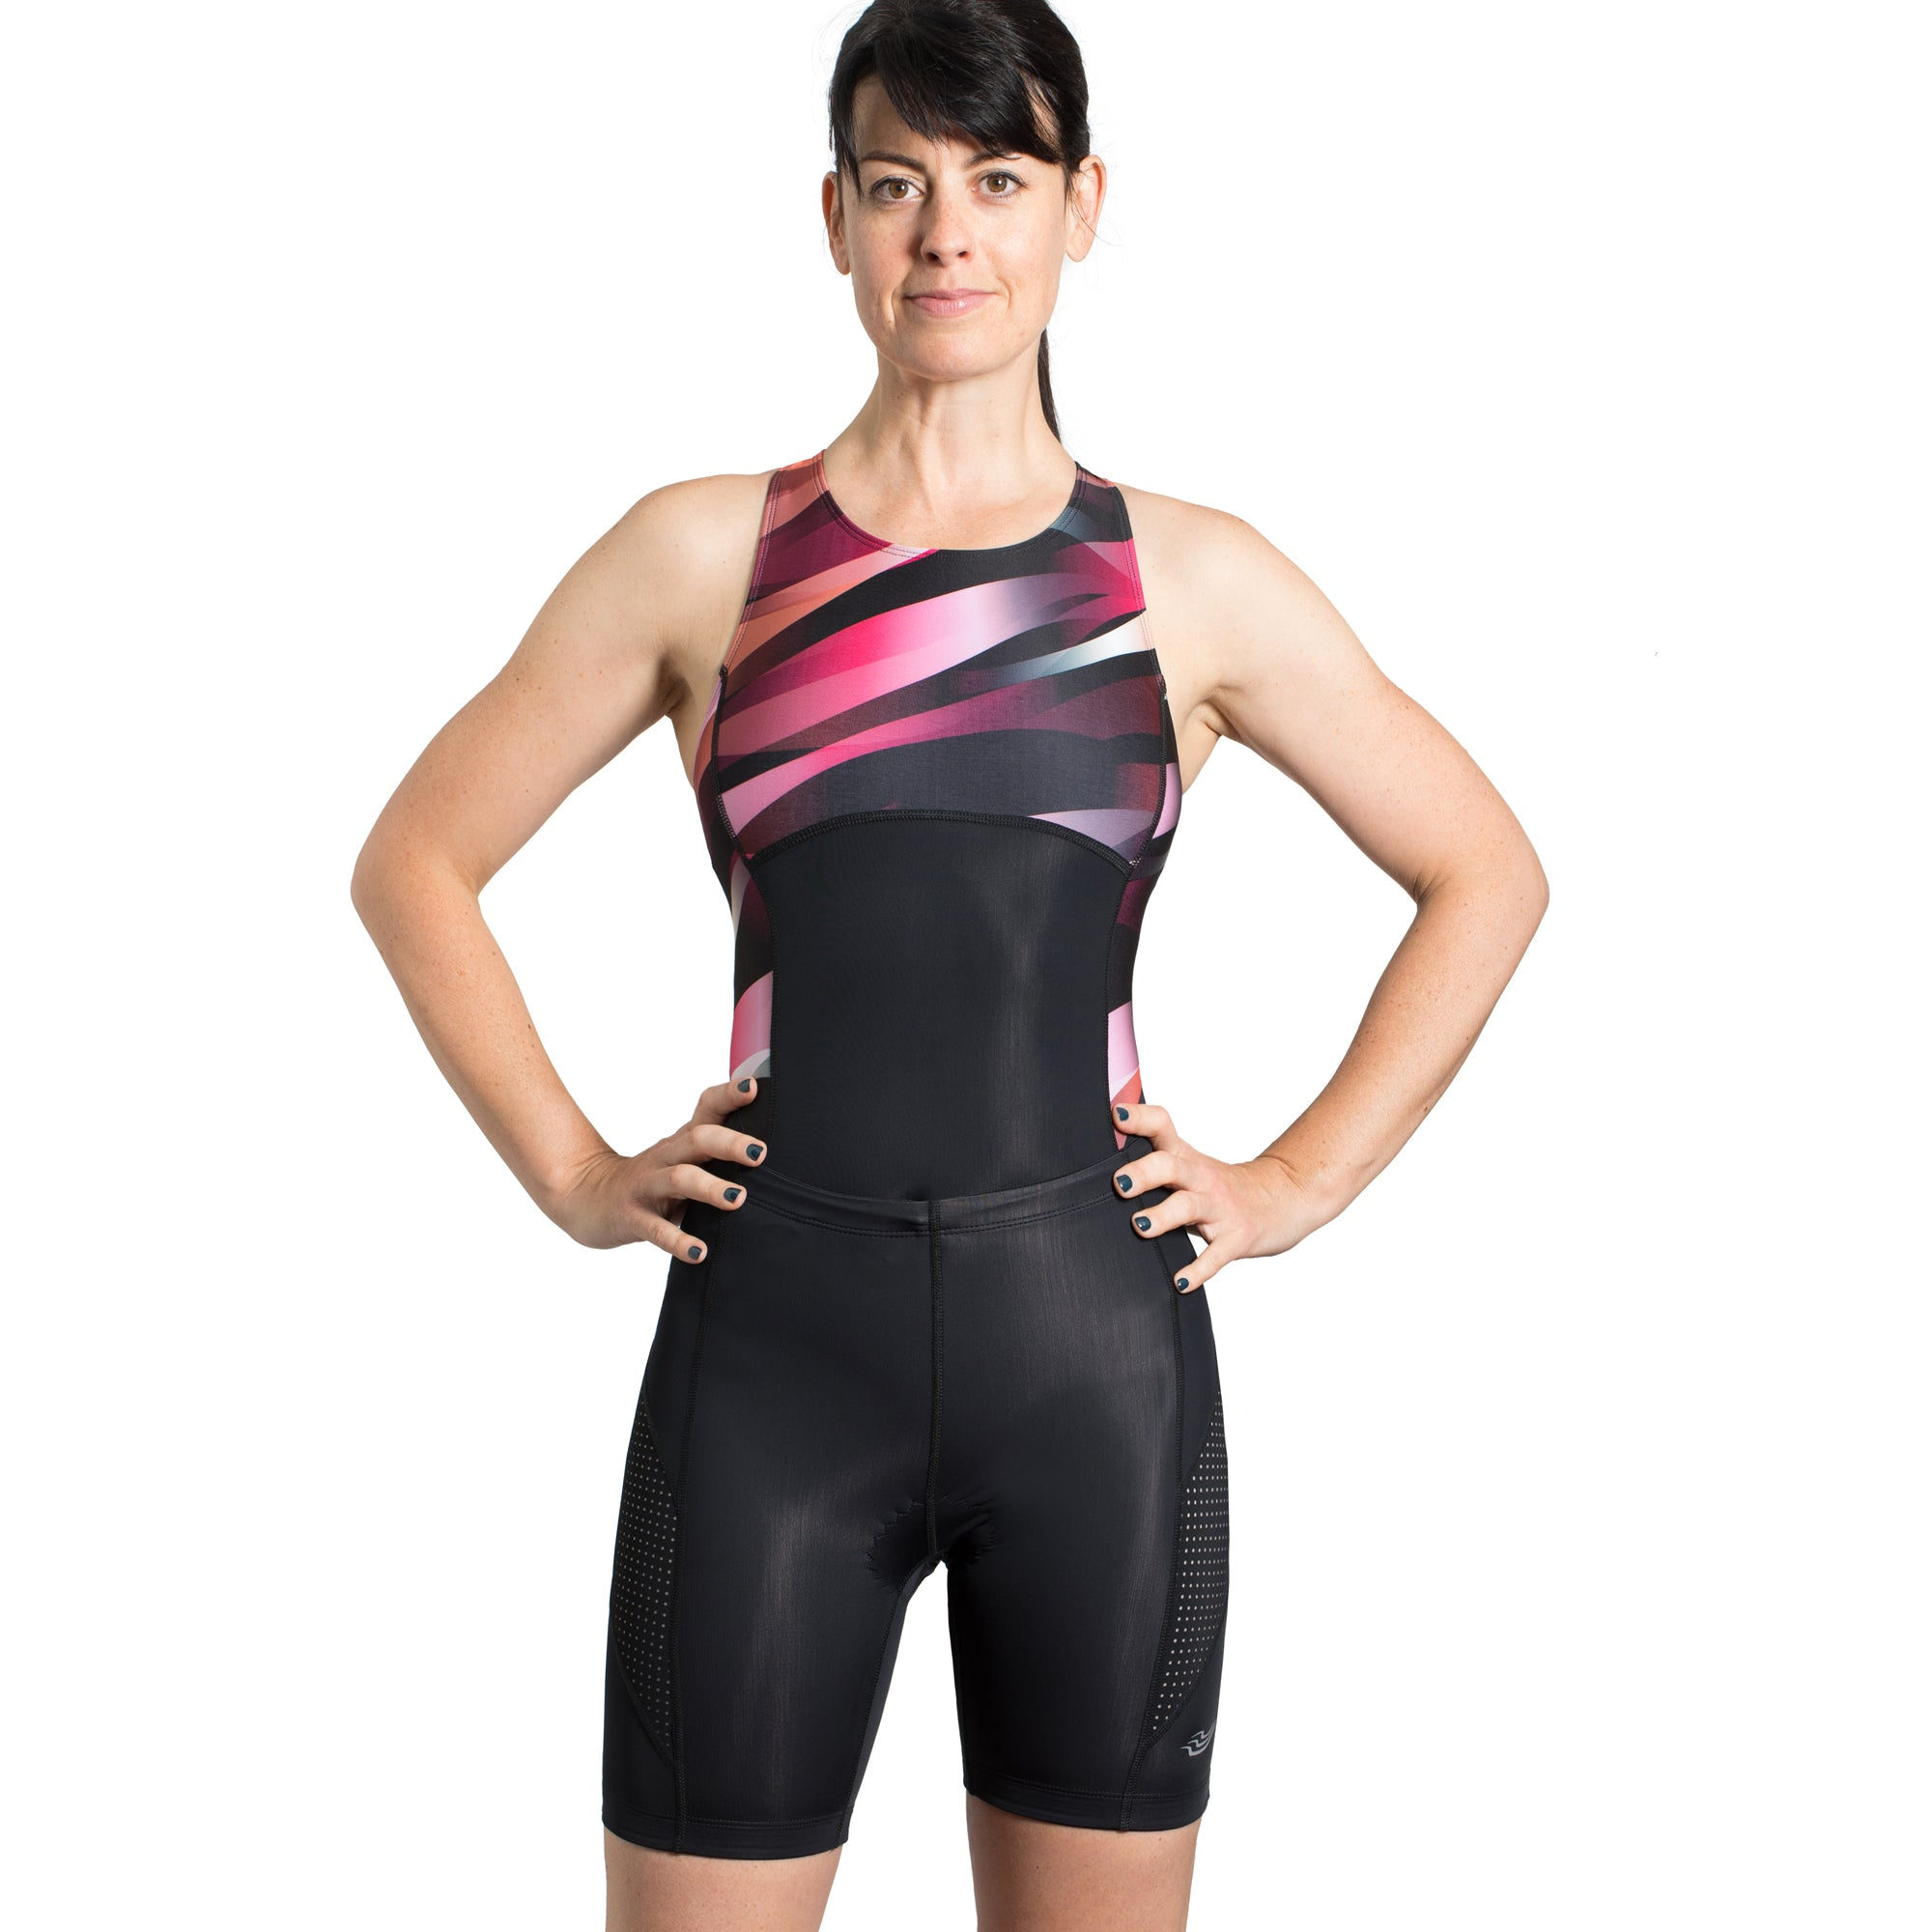 Wave & Champion Swimsuit and Tri Shorts Set - Red